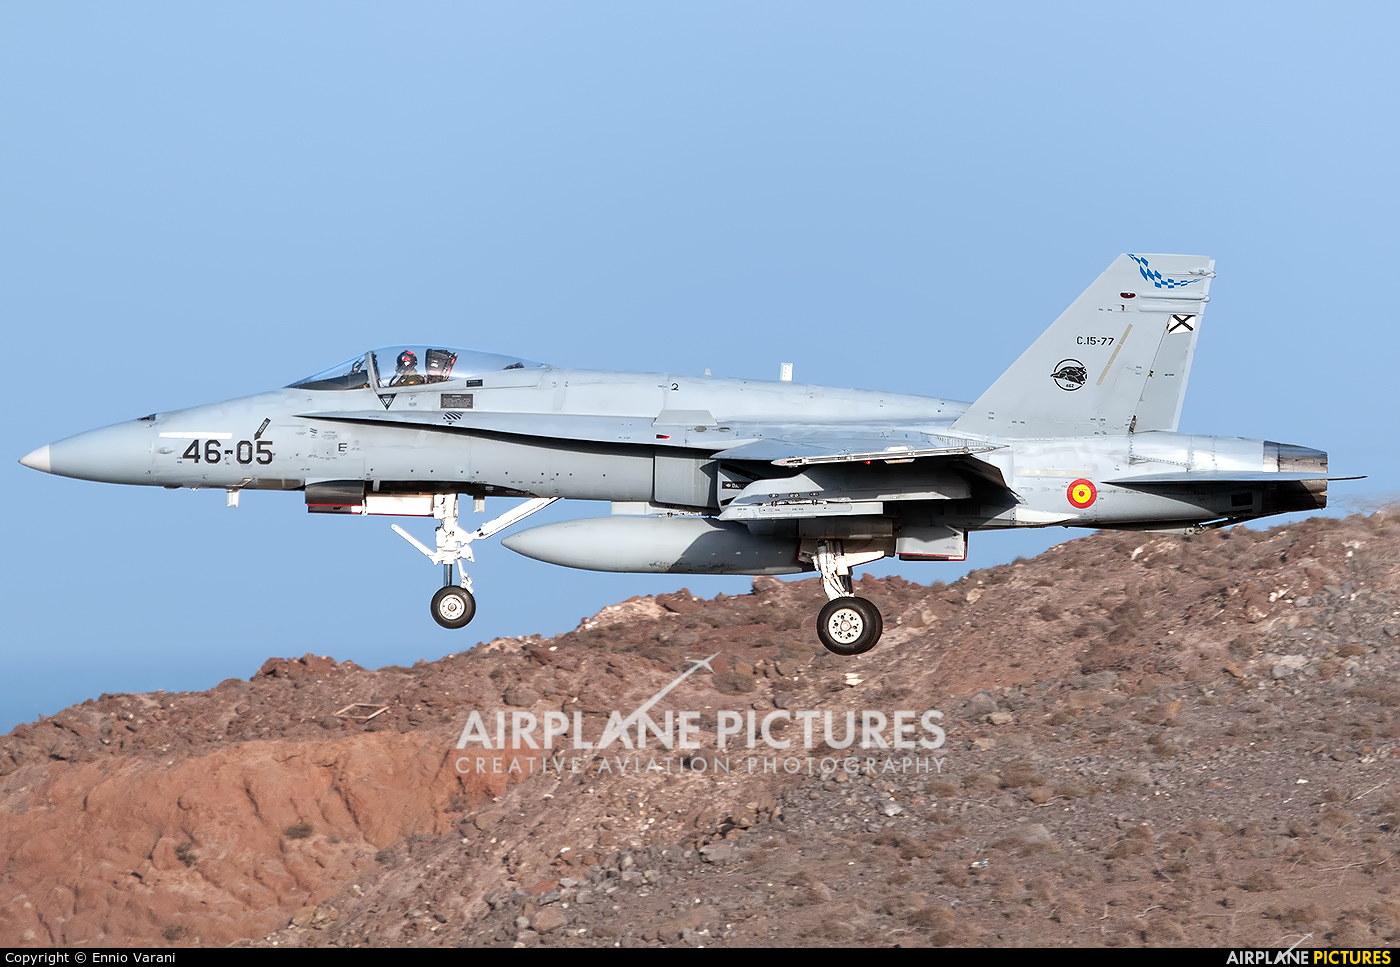 Spain - Air Force C.15-77 aircraft at Las Palmas de Gran Canaria